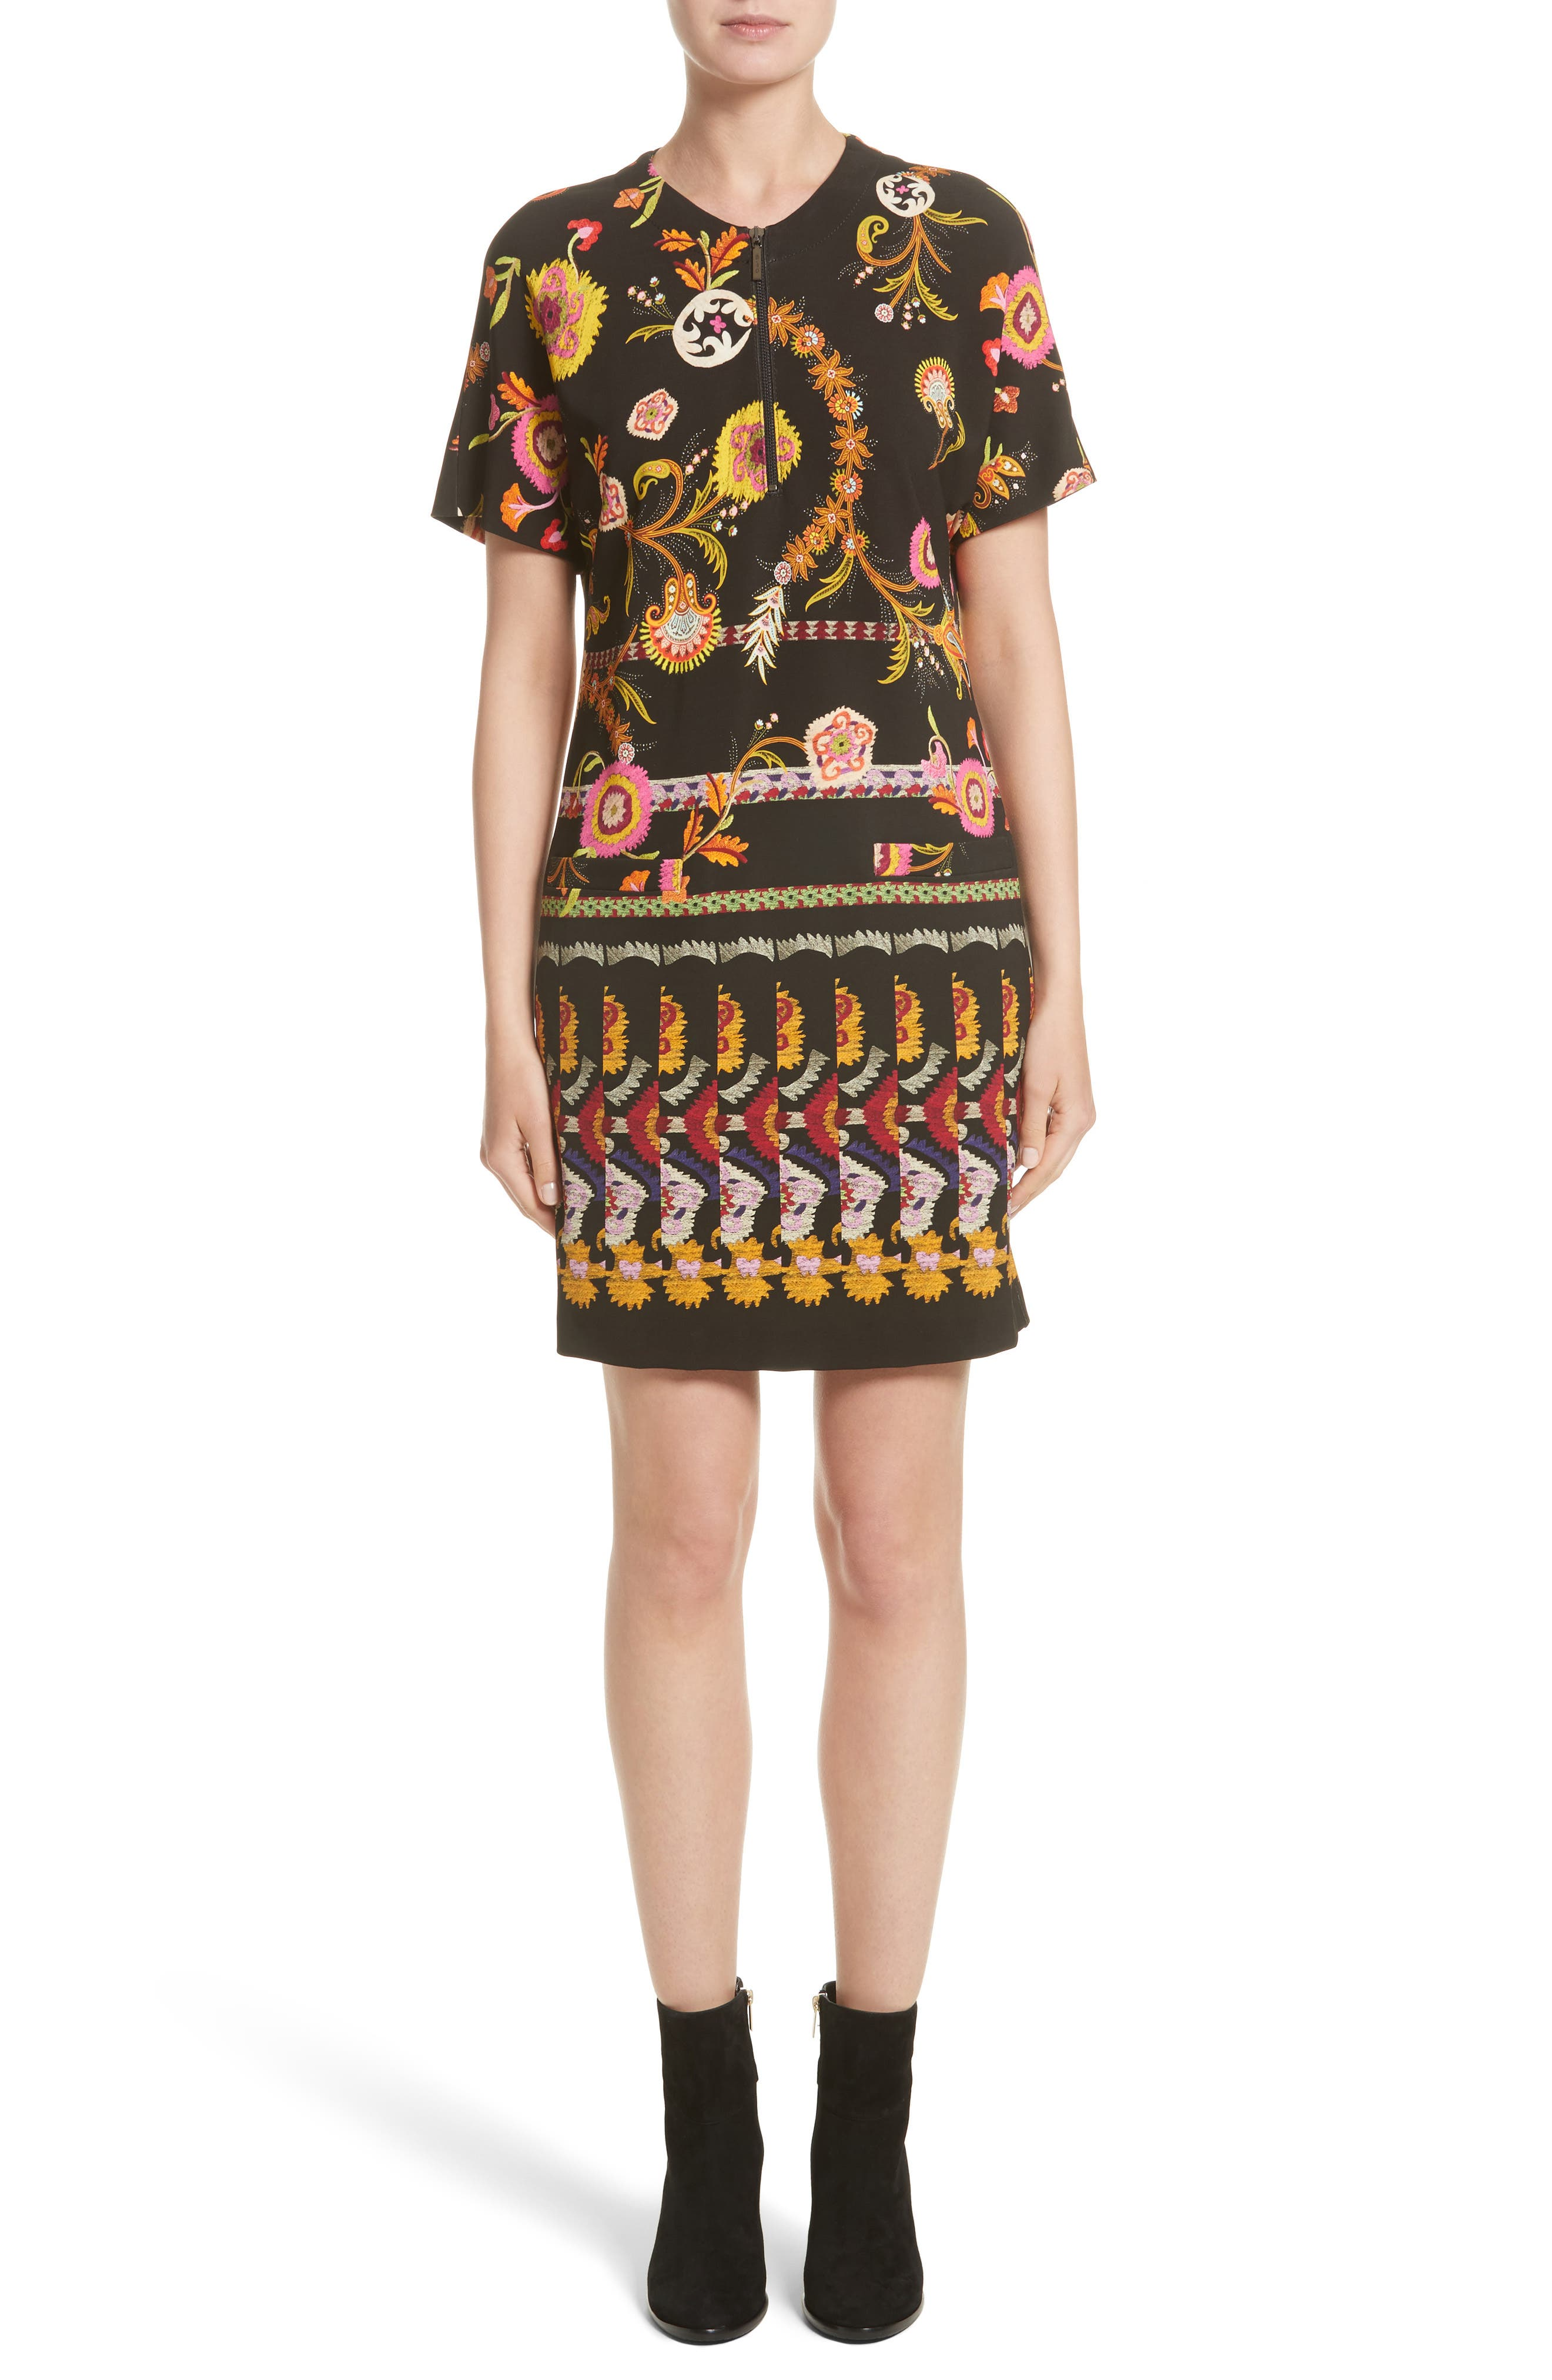 Alternate Image 1 Selected - Etro Floral & Paisley Jersey Dress